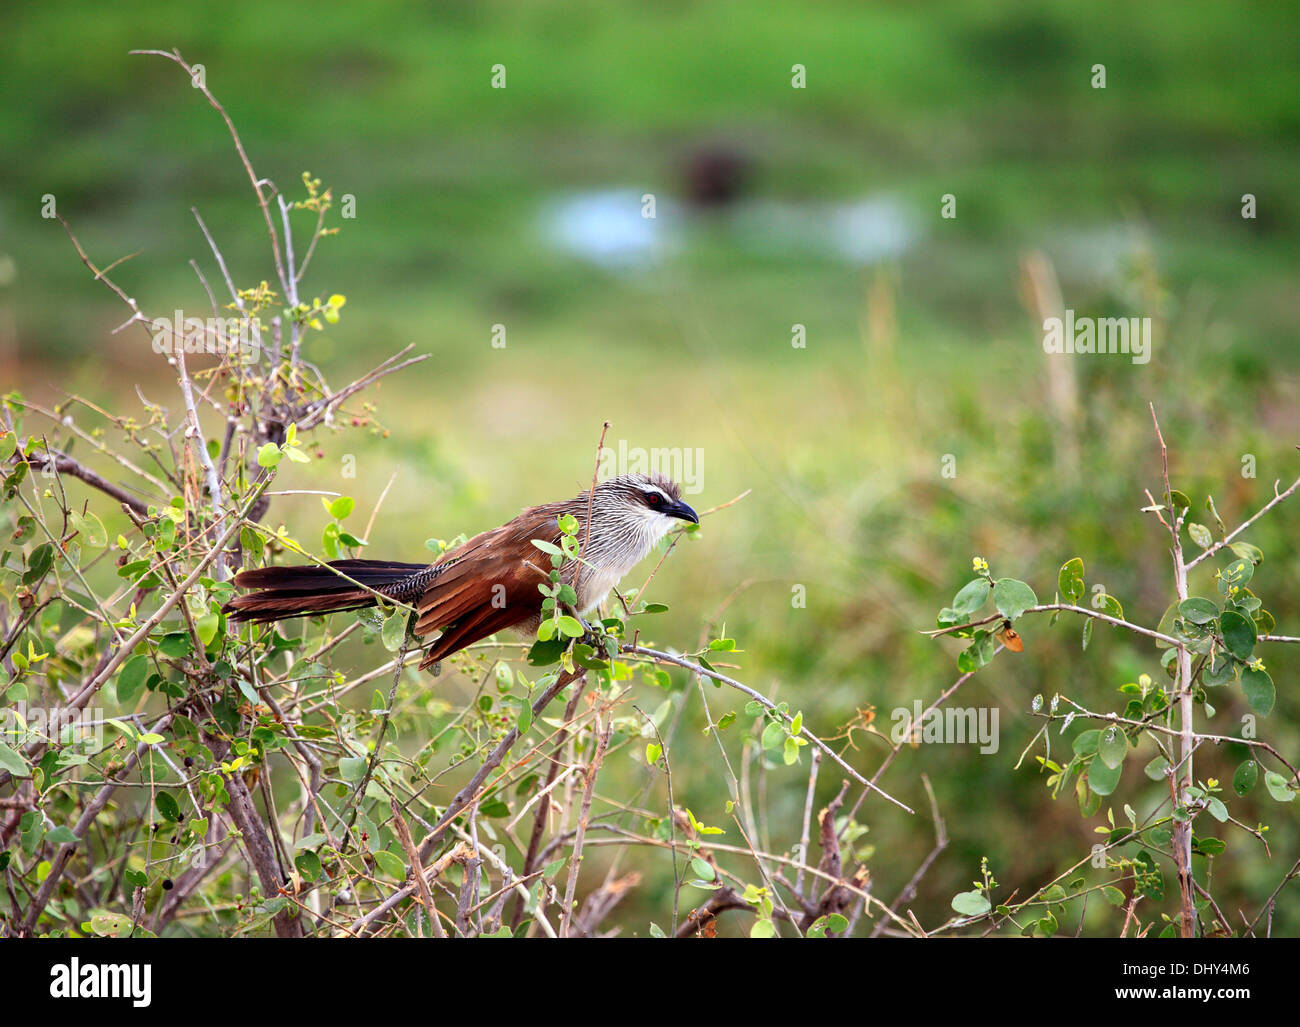 White-browed Coucal in bush (Centropus superciliosus), Amboseli National Park, Kenya - Stock Image